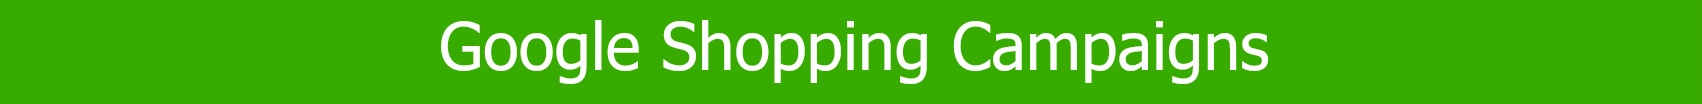 online-retailers-holiday-sprint-google-shopping-campaigns